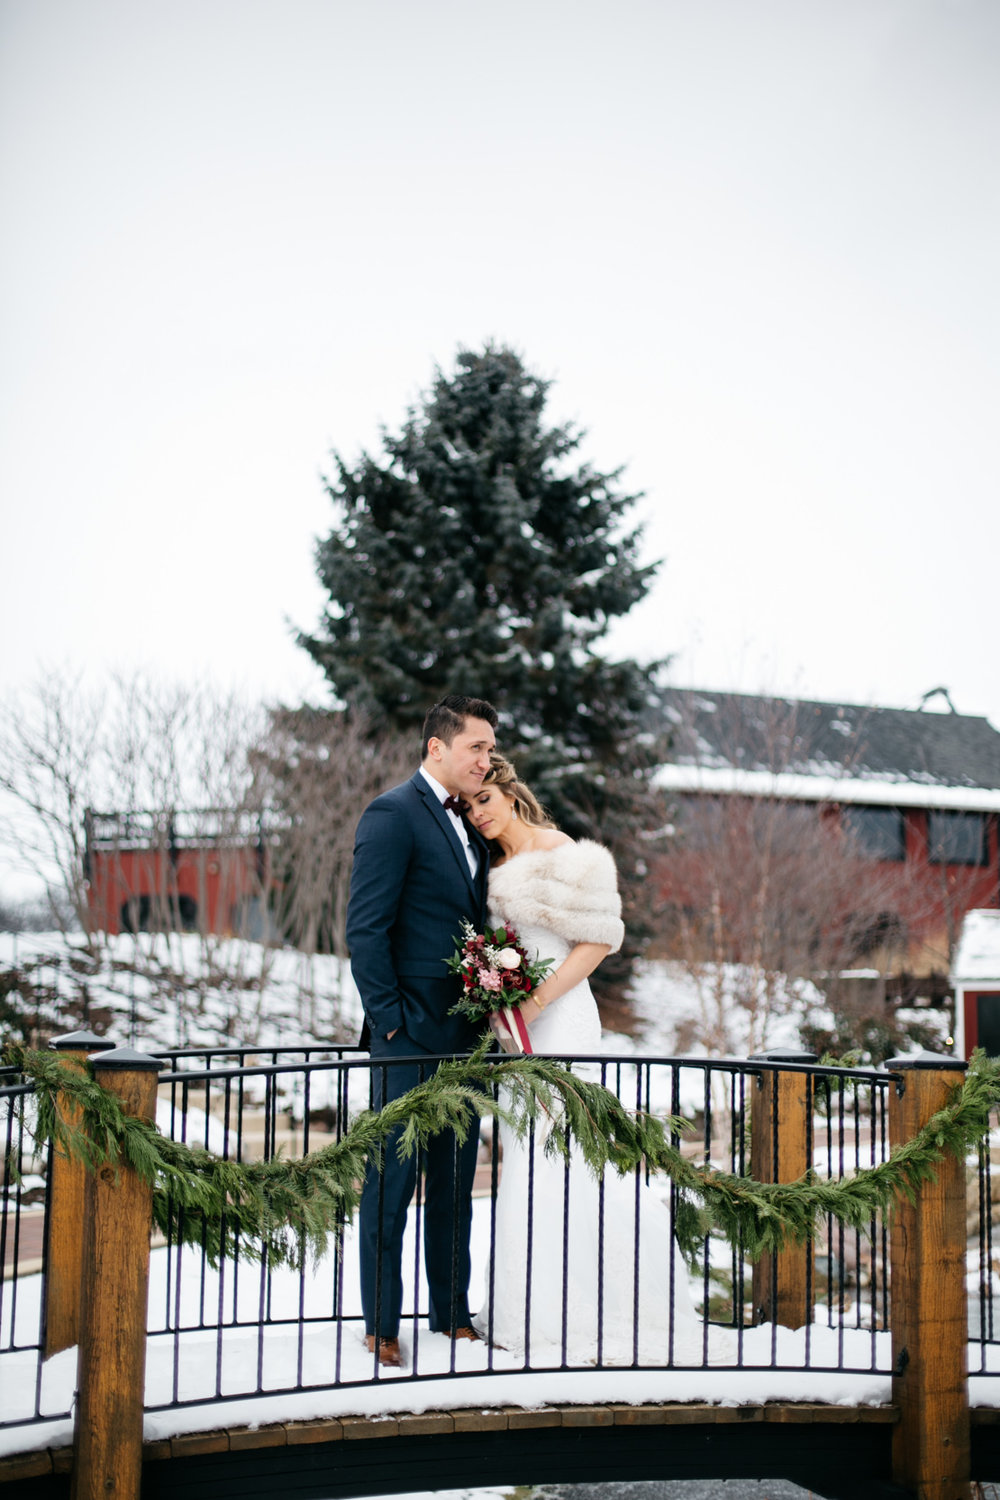 GrainandCompass_DanielChristineWedding_Blog-53.jpg